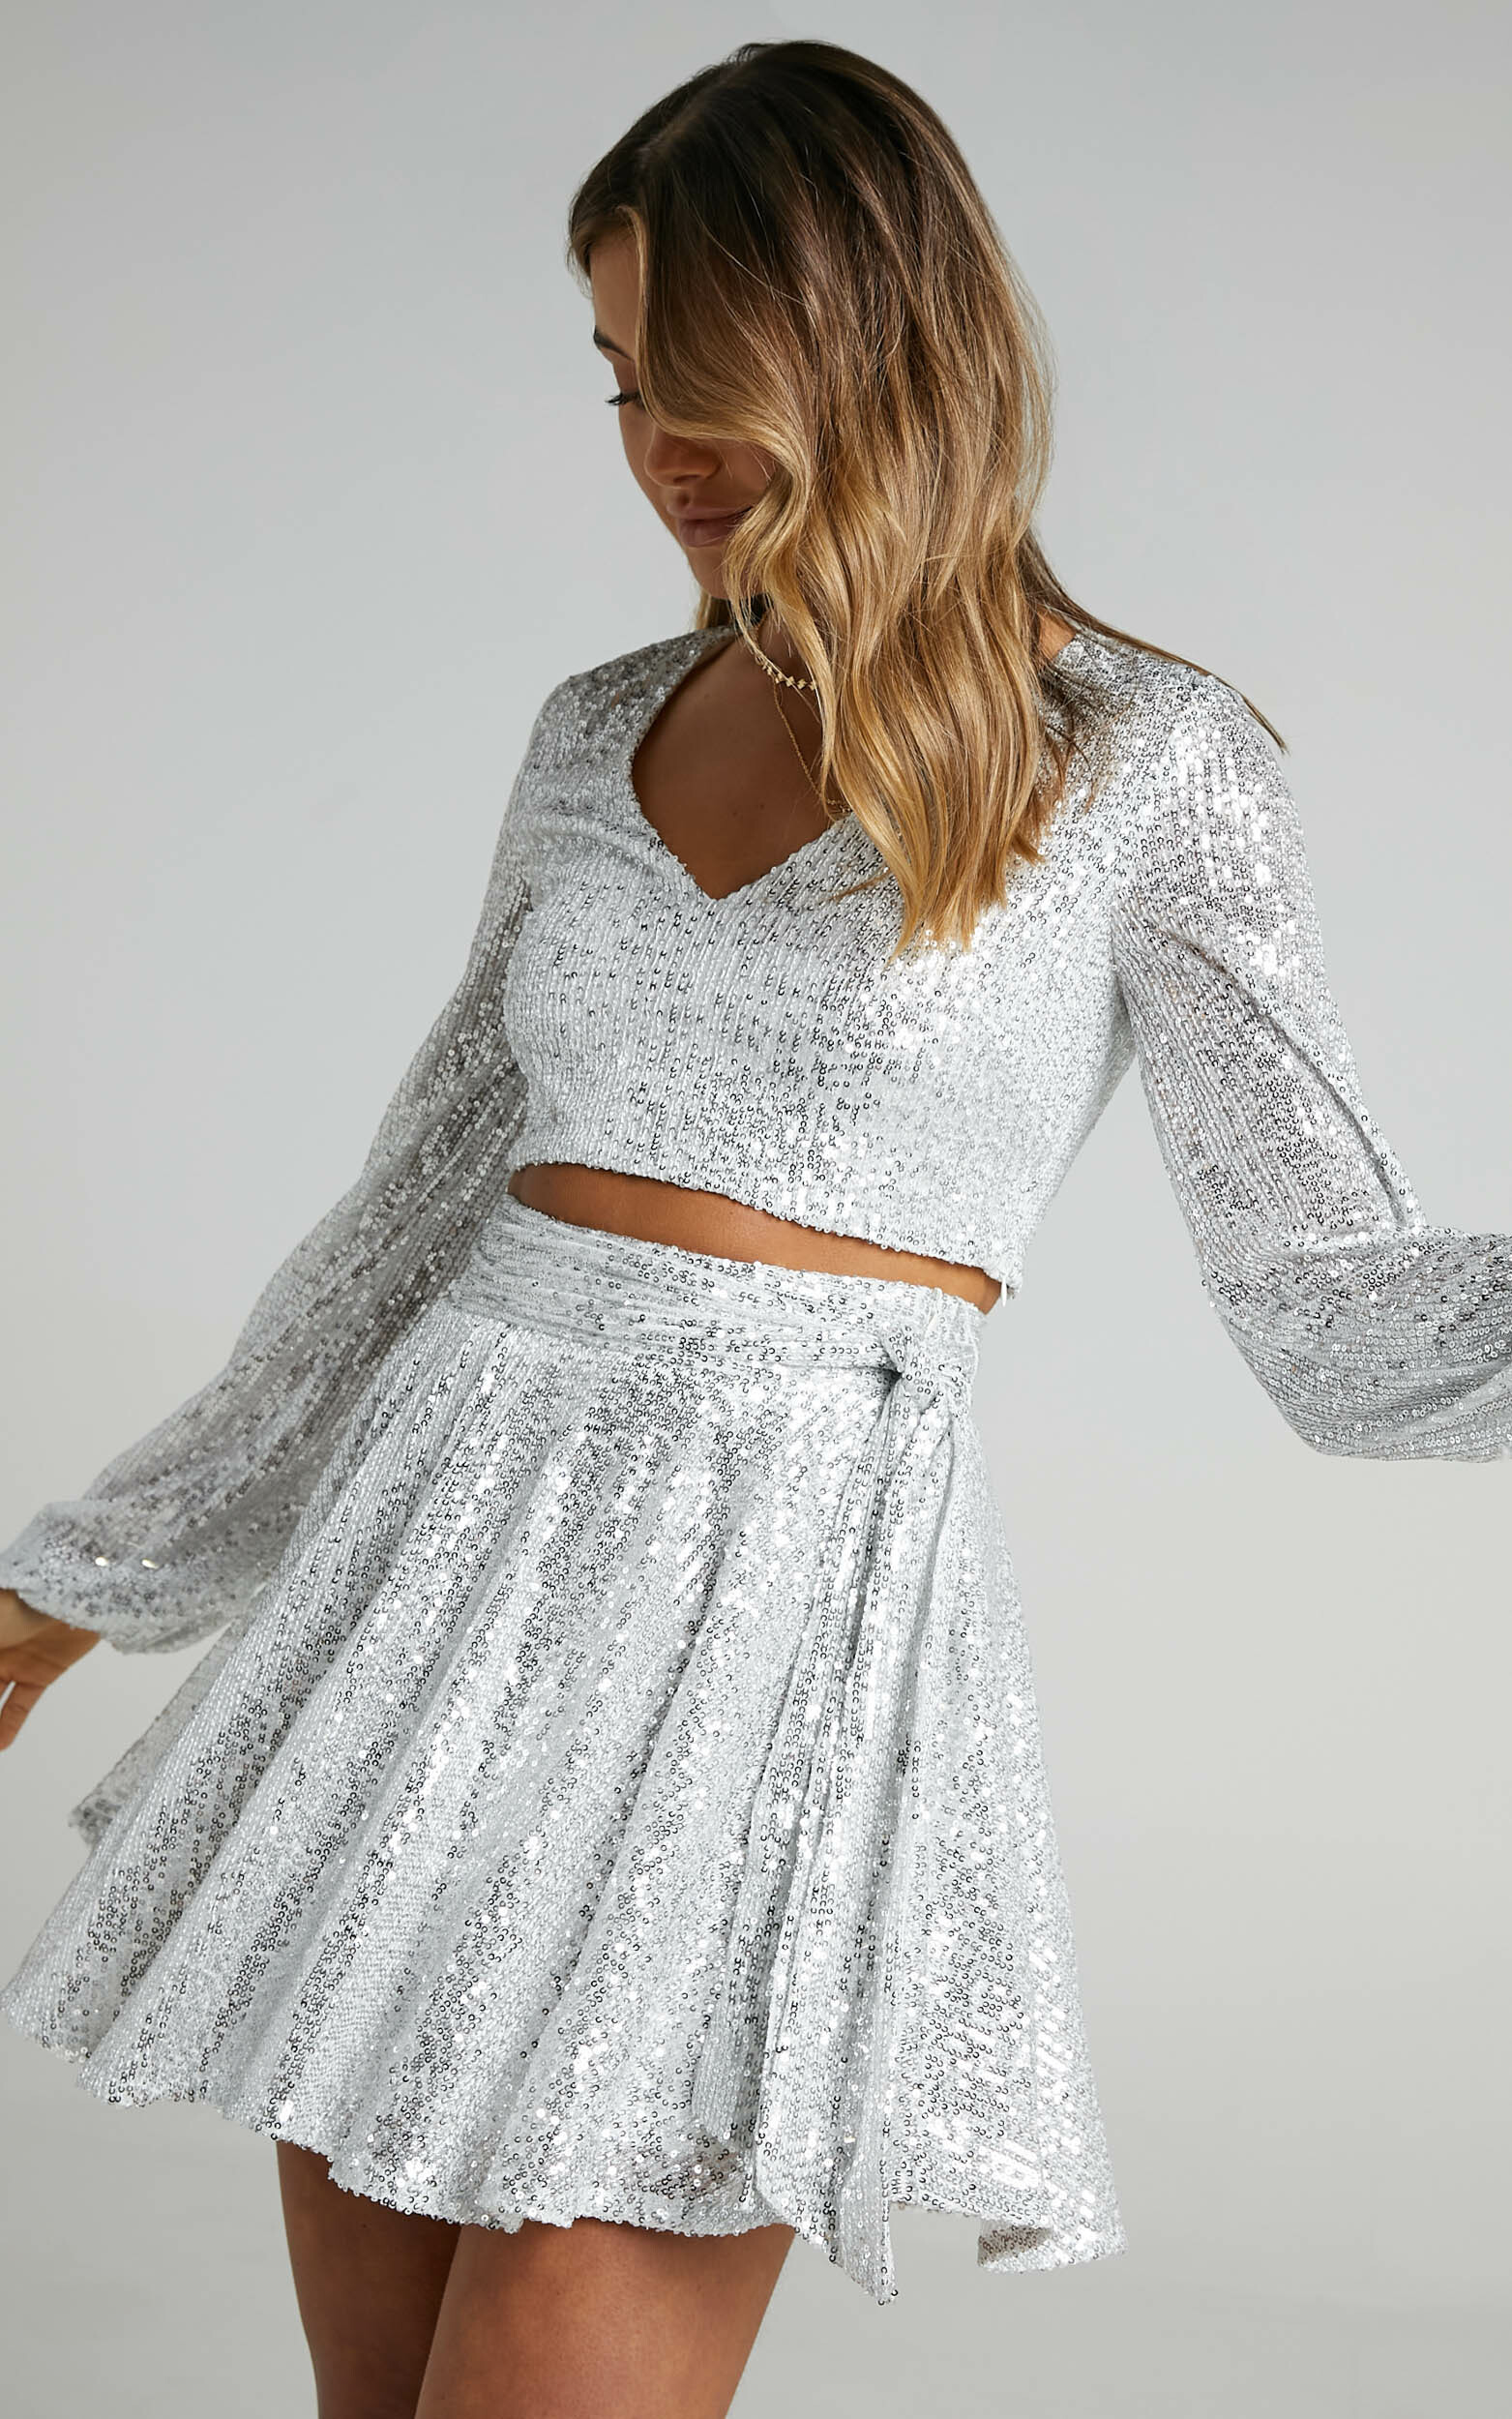 Cami Longsleeve Two Piece Set in Silver Sequin - 06, SLV2, hi-res image number null